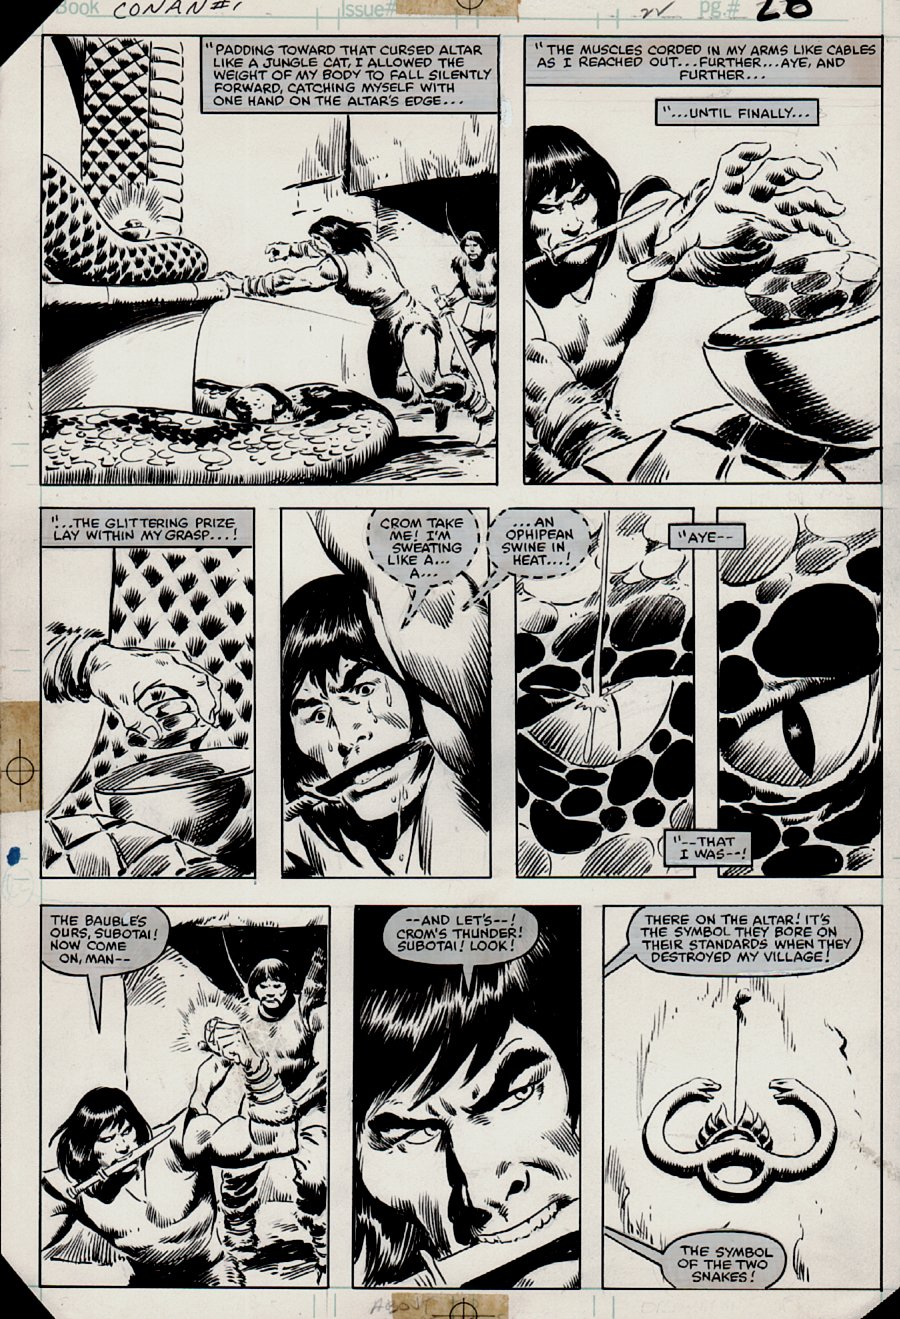 Conan Movie Special #1 p 28 (Marvel Super Special #21 Also)  1982